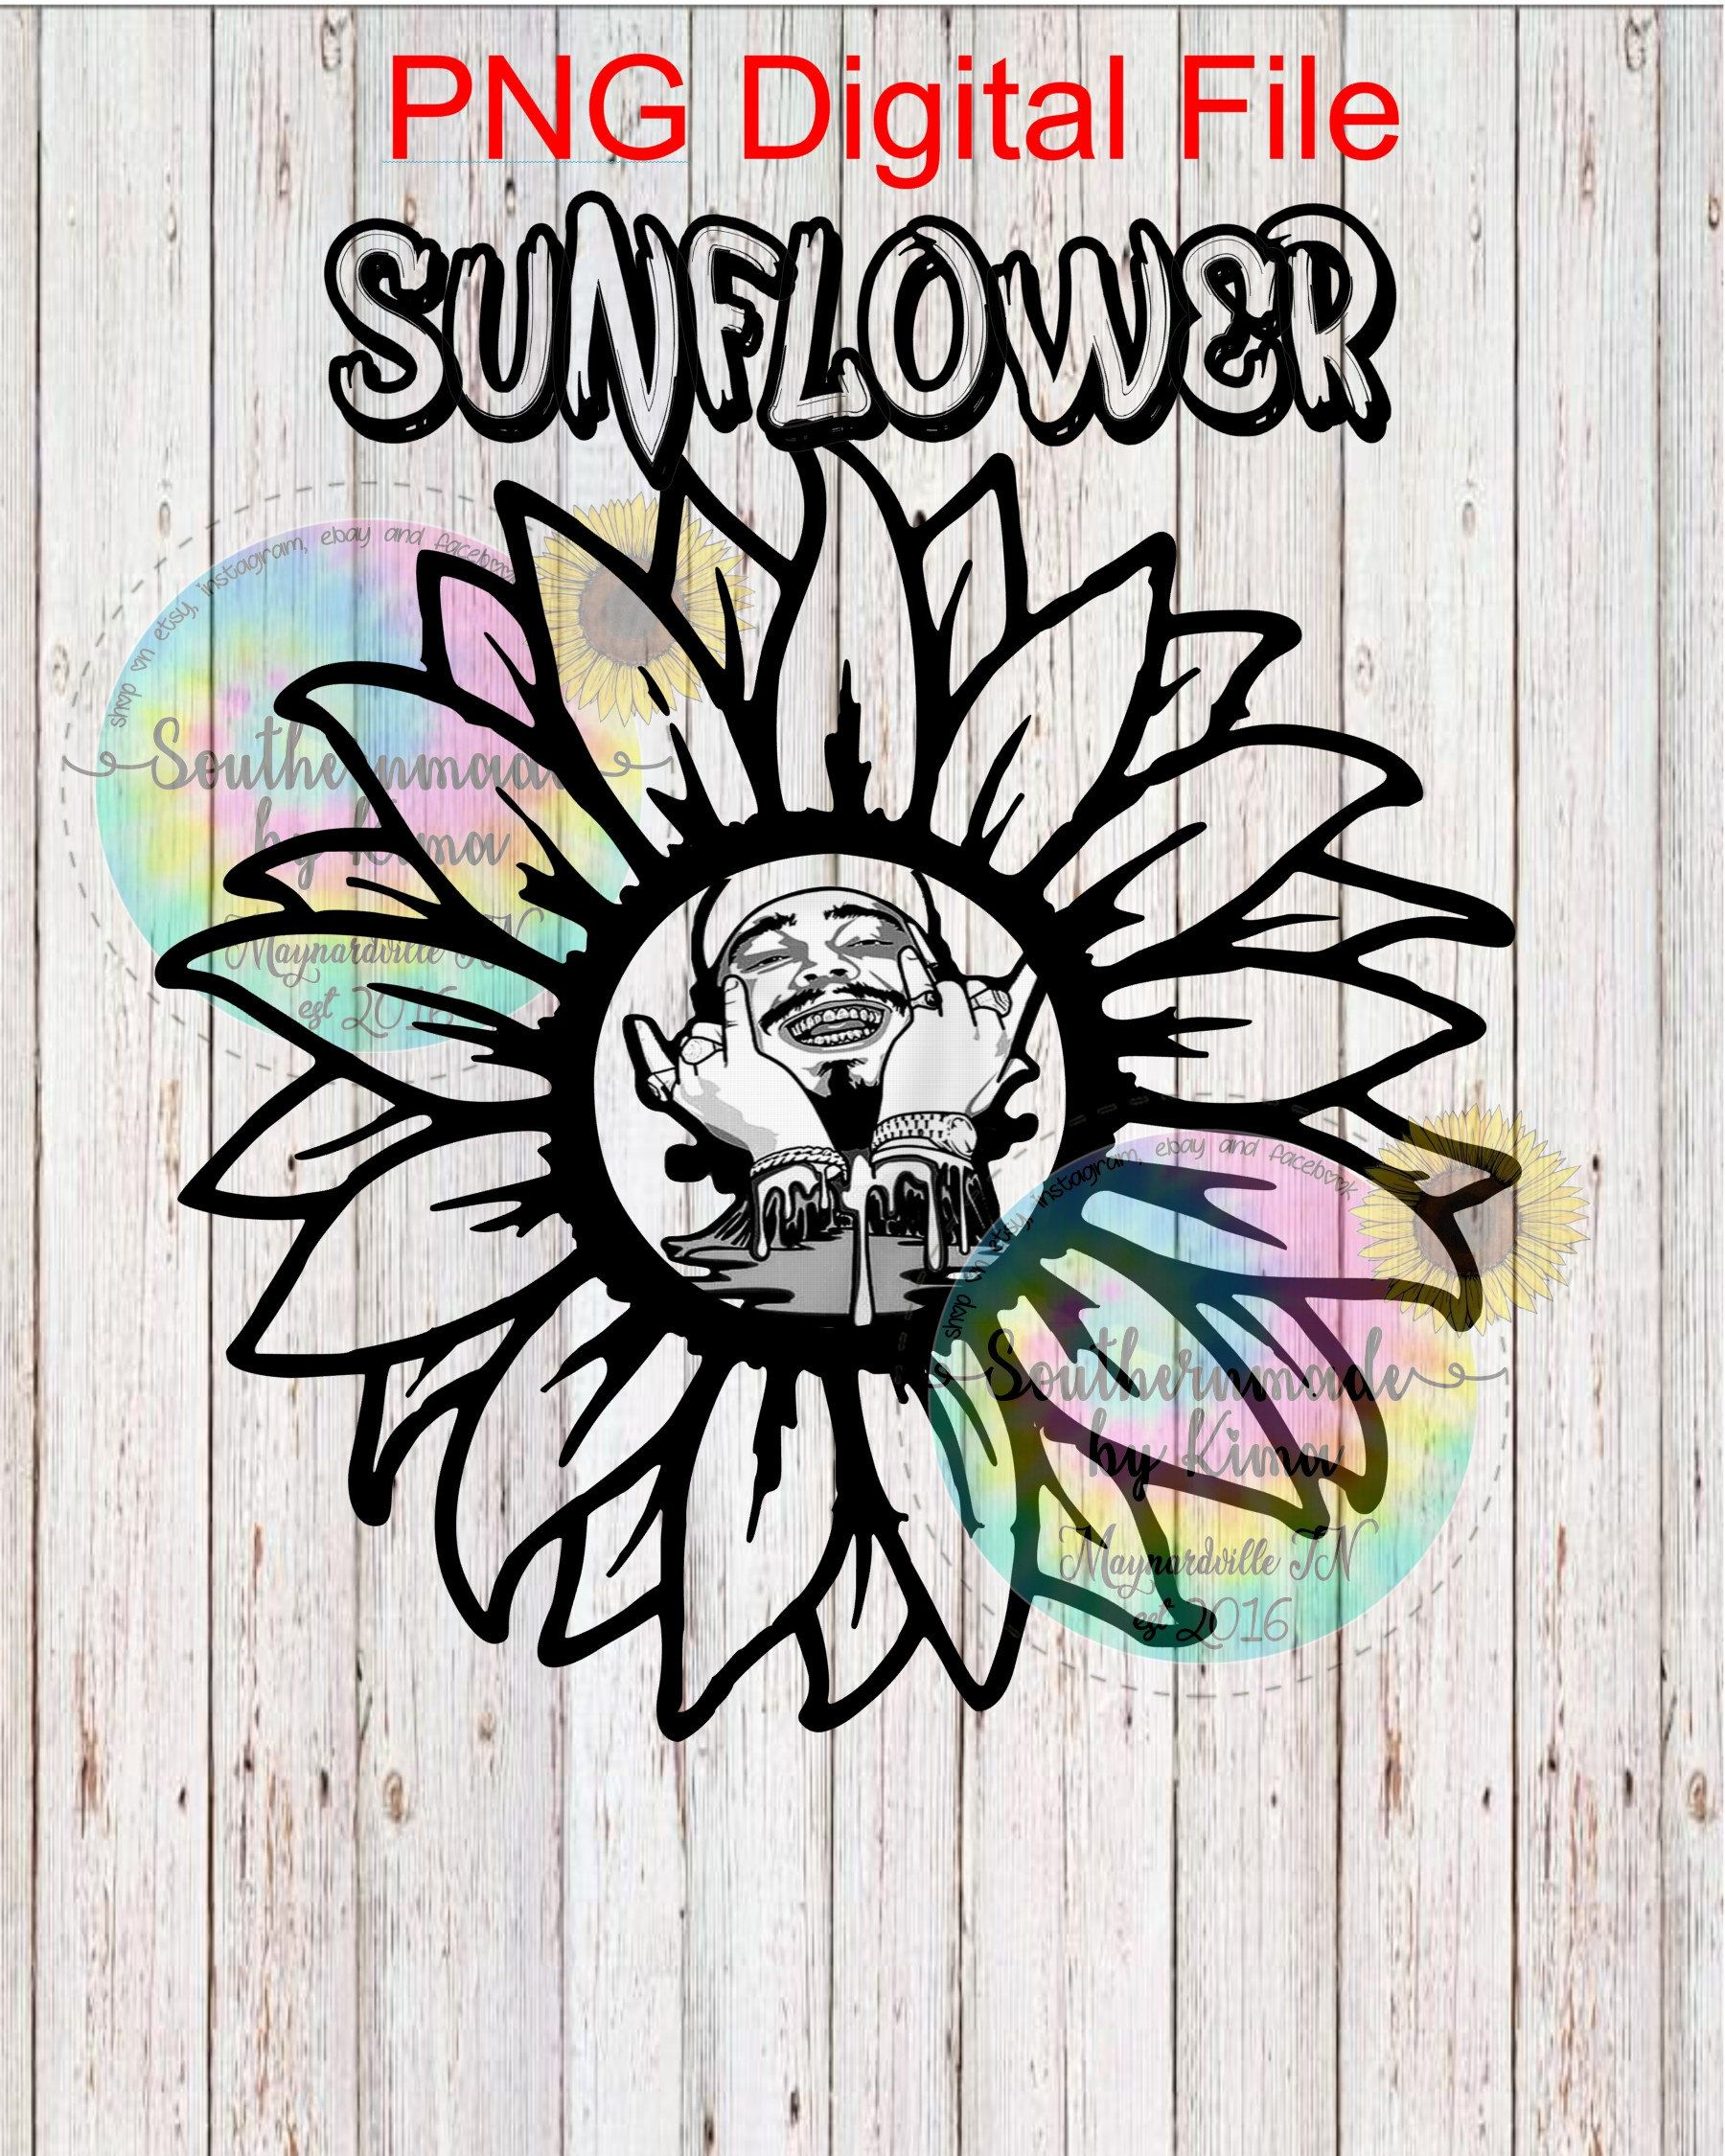 Post Malone Clip Art: Posty, Post Malone, Sunflower, Sublimation Digital Png